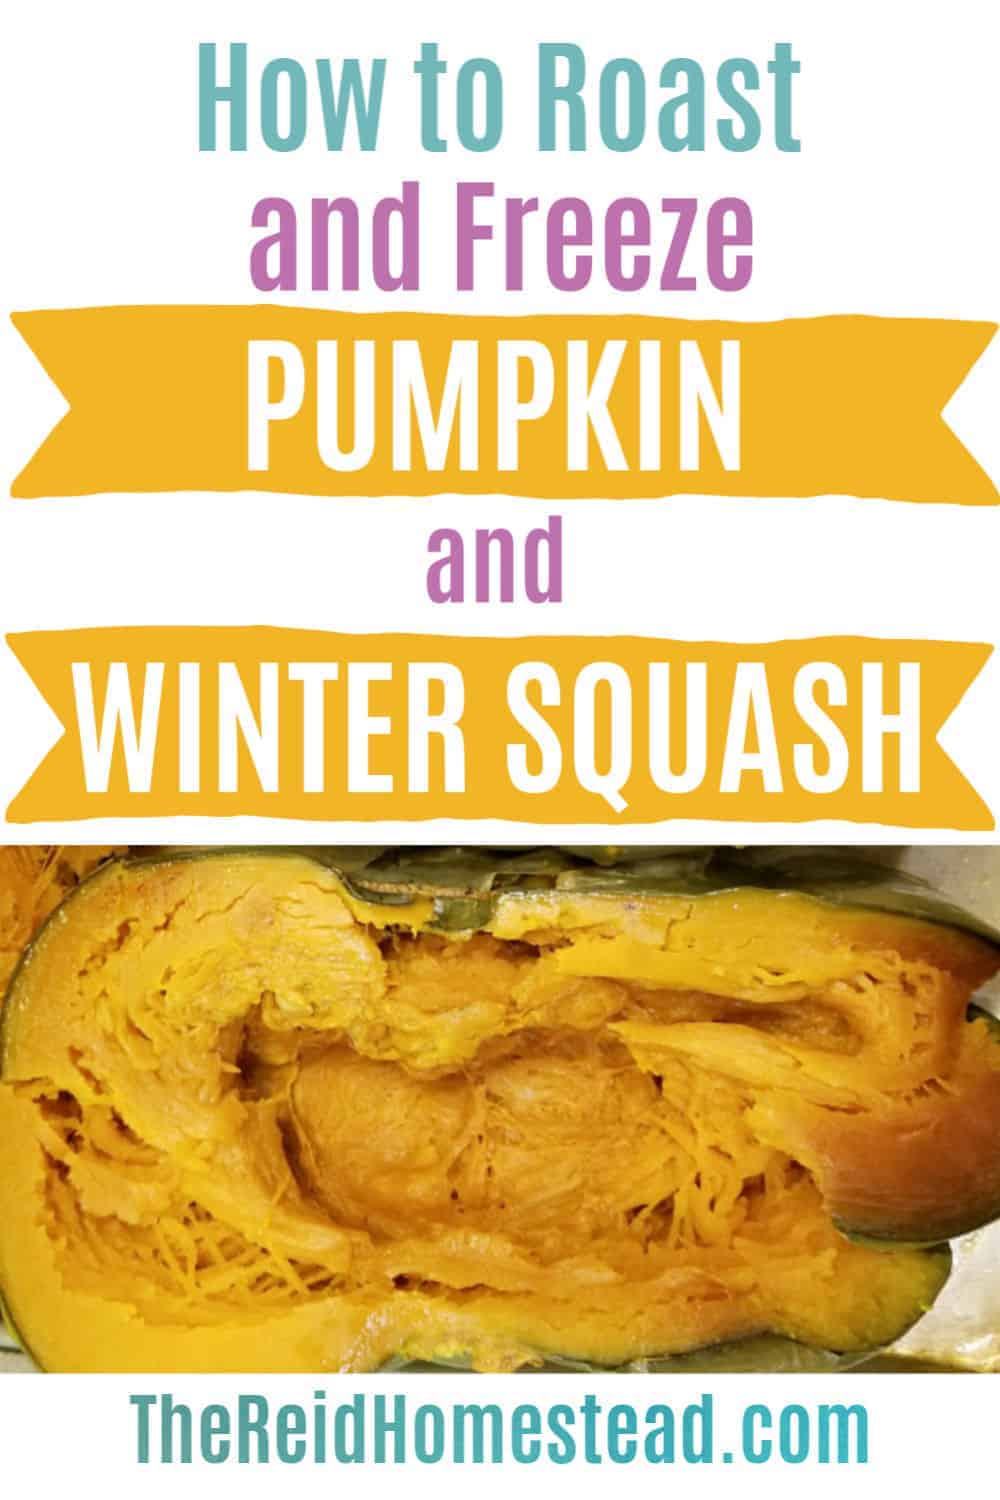 a close up of a half of a roasted pumpkin with text overlay How to Roast and Freeze Pumpkin and Winter Squash